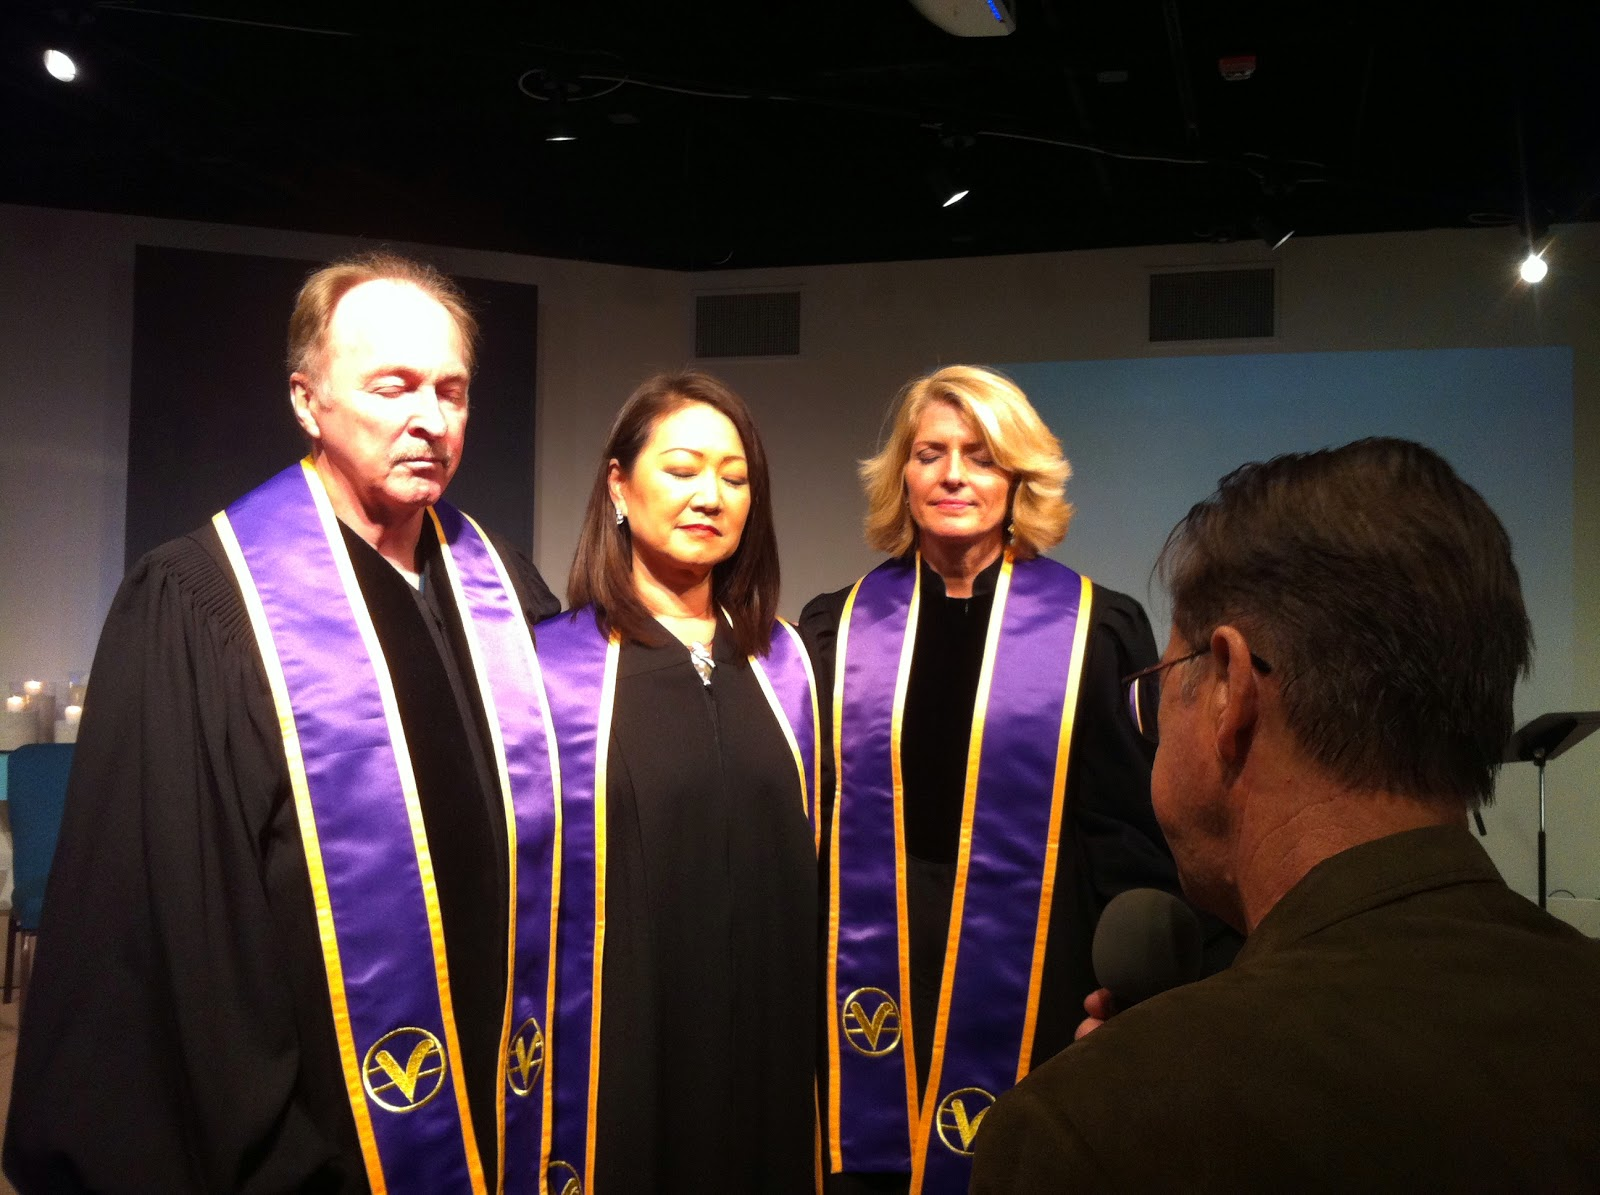 Rev. Bruce Fredenburg, Rev. Karyn Allen, Rev. Pattie Mercado,